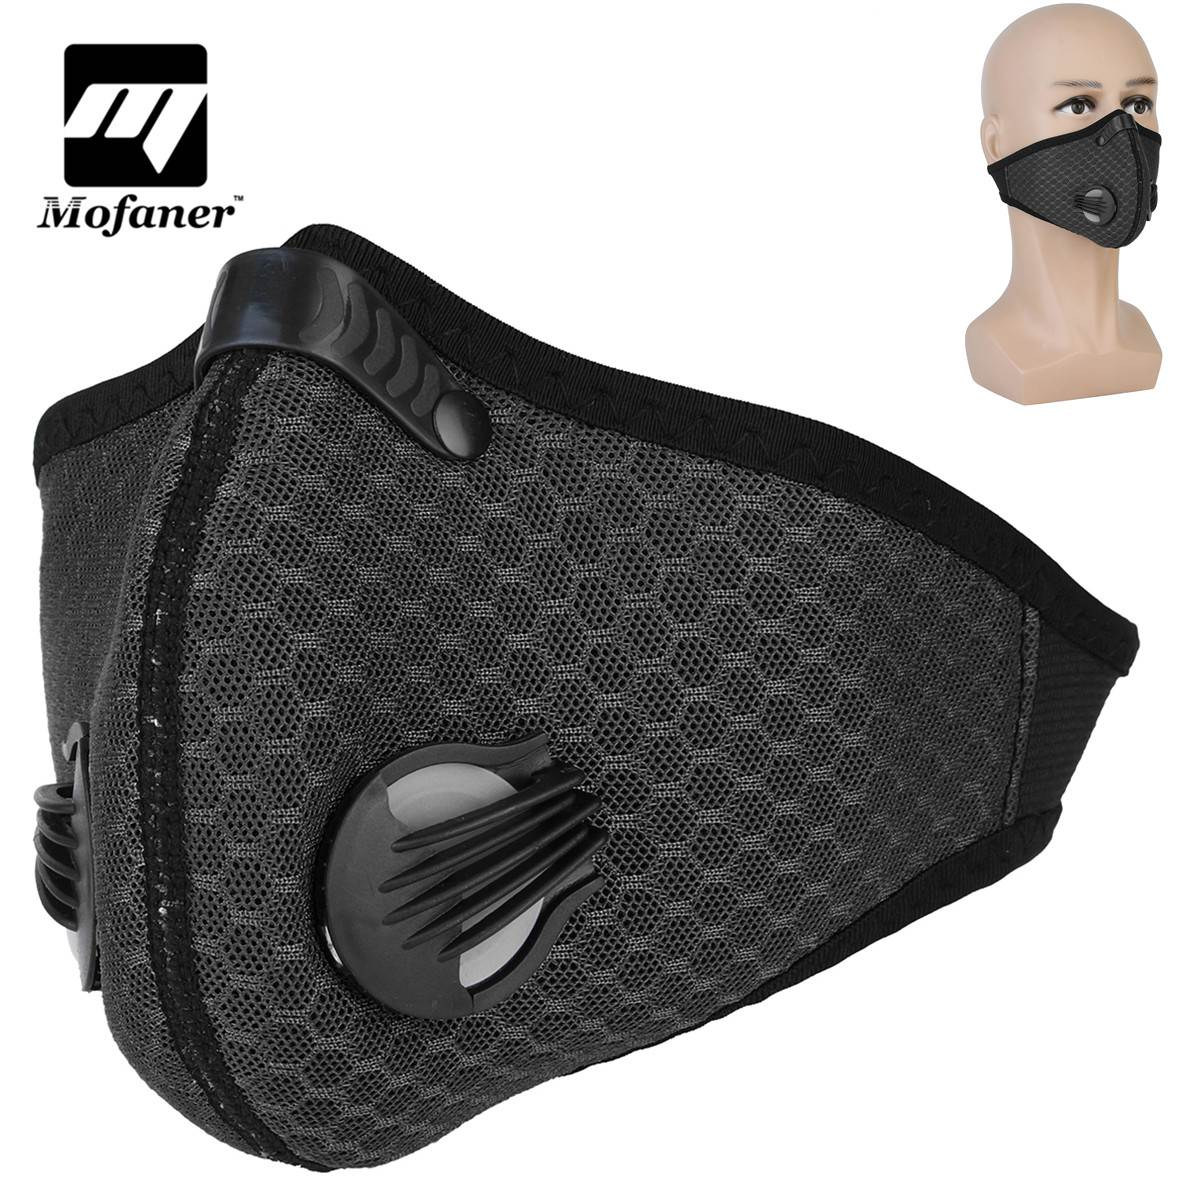 Mofaner Cycling Sport Mask Activated Carbon Air Filter Motorcycle Outdoors Masks Fashion Mouth-Muffle Dust Half Face Cover